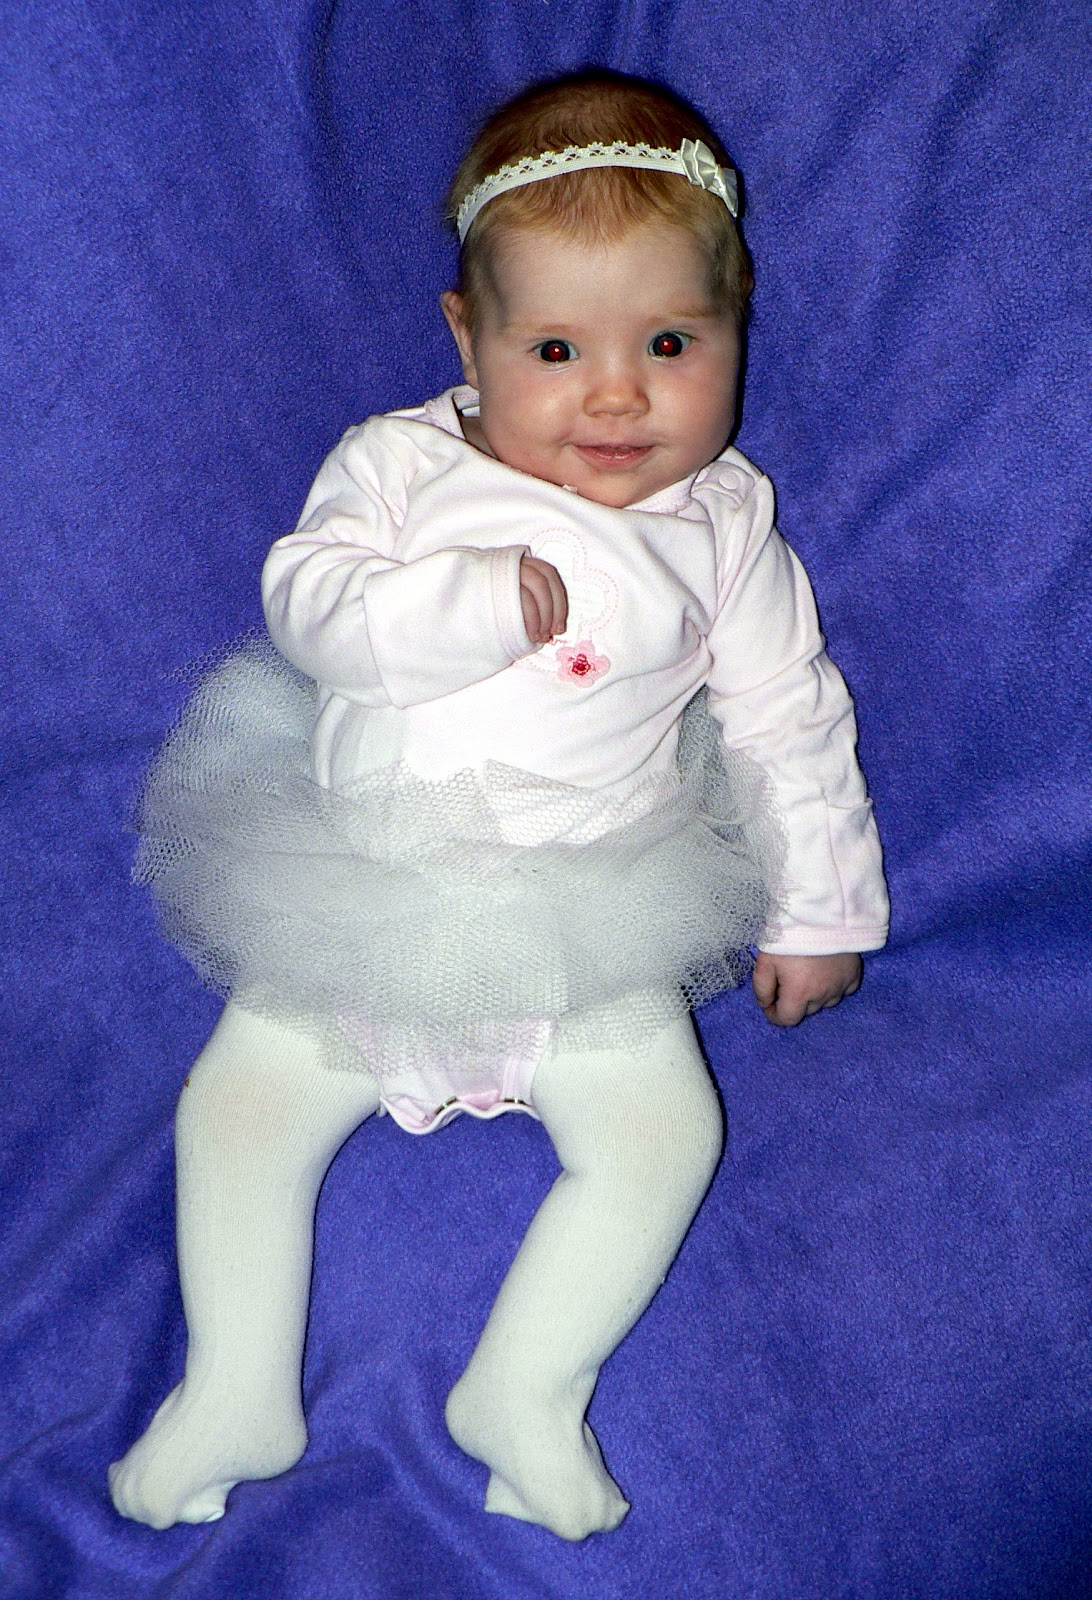 homemade baby ballerina costume  sc 1 st  Bless this Mess & Homemade Halloween Costumes for Kids and Families - Bless This Mess